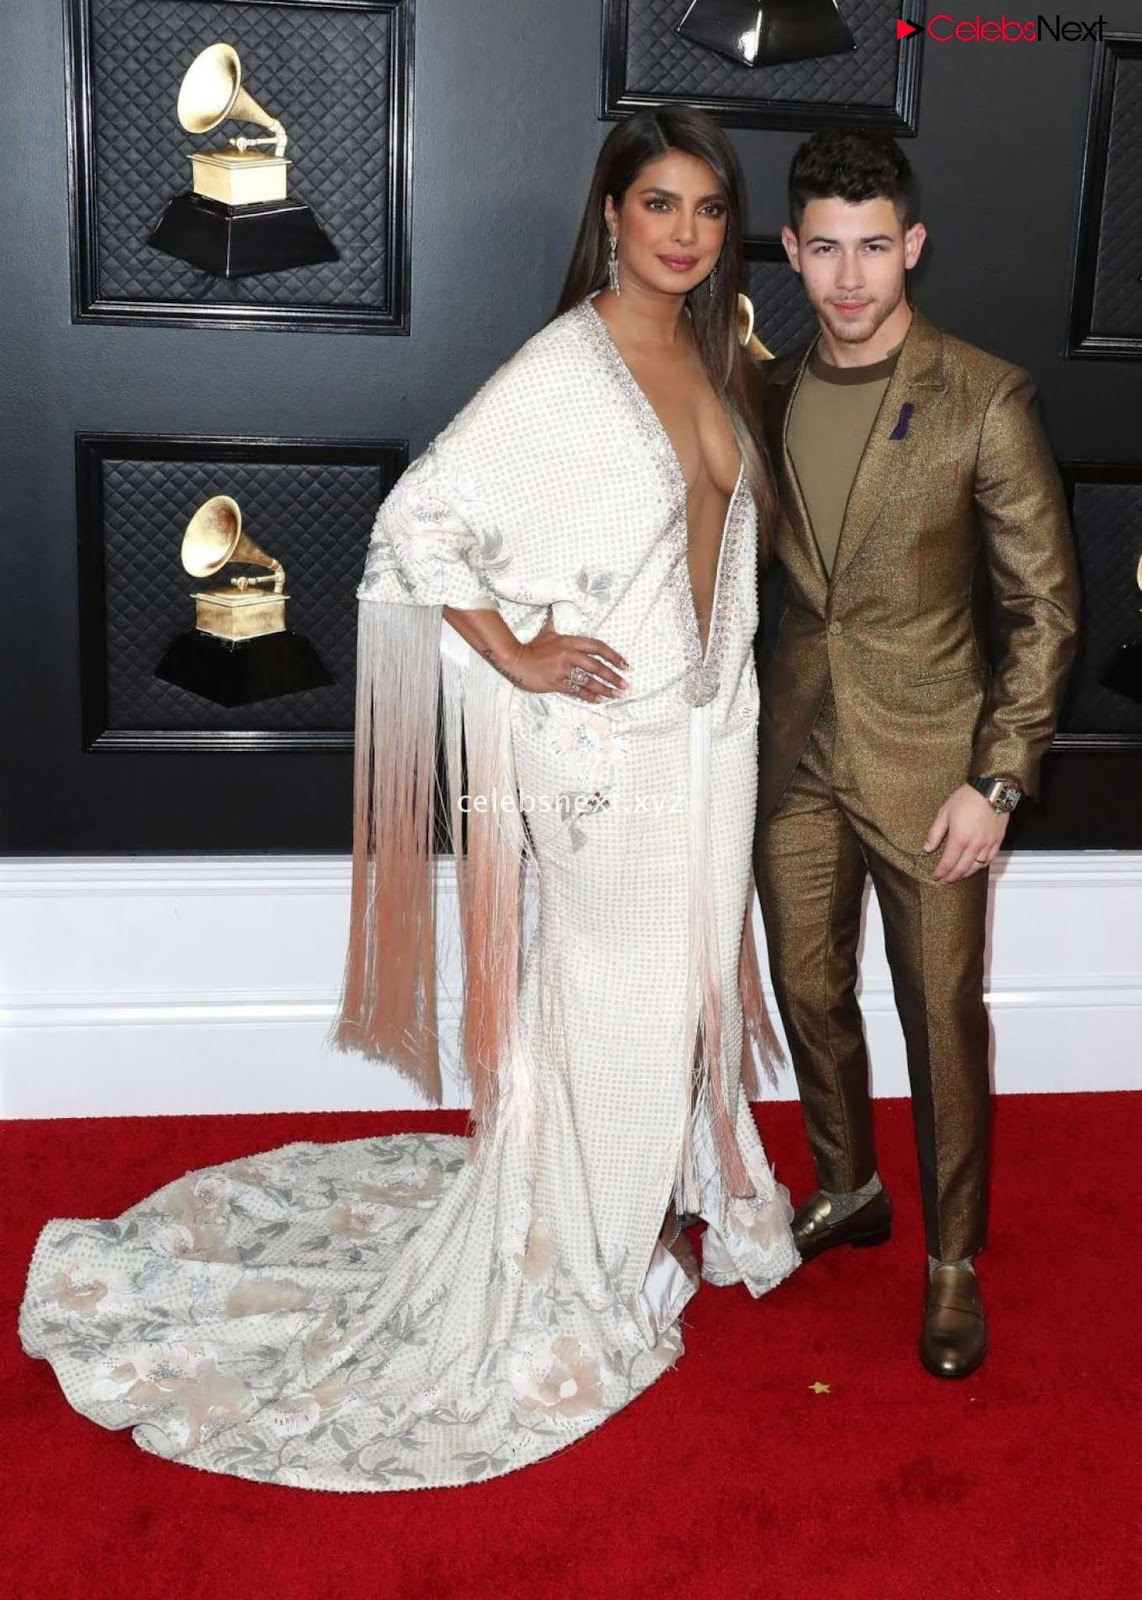 Priyanka CHopra in Lovely Evening Gown without Front Buttons at Grammy Awards 2020